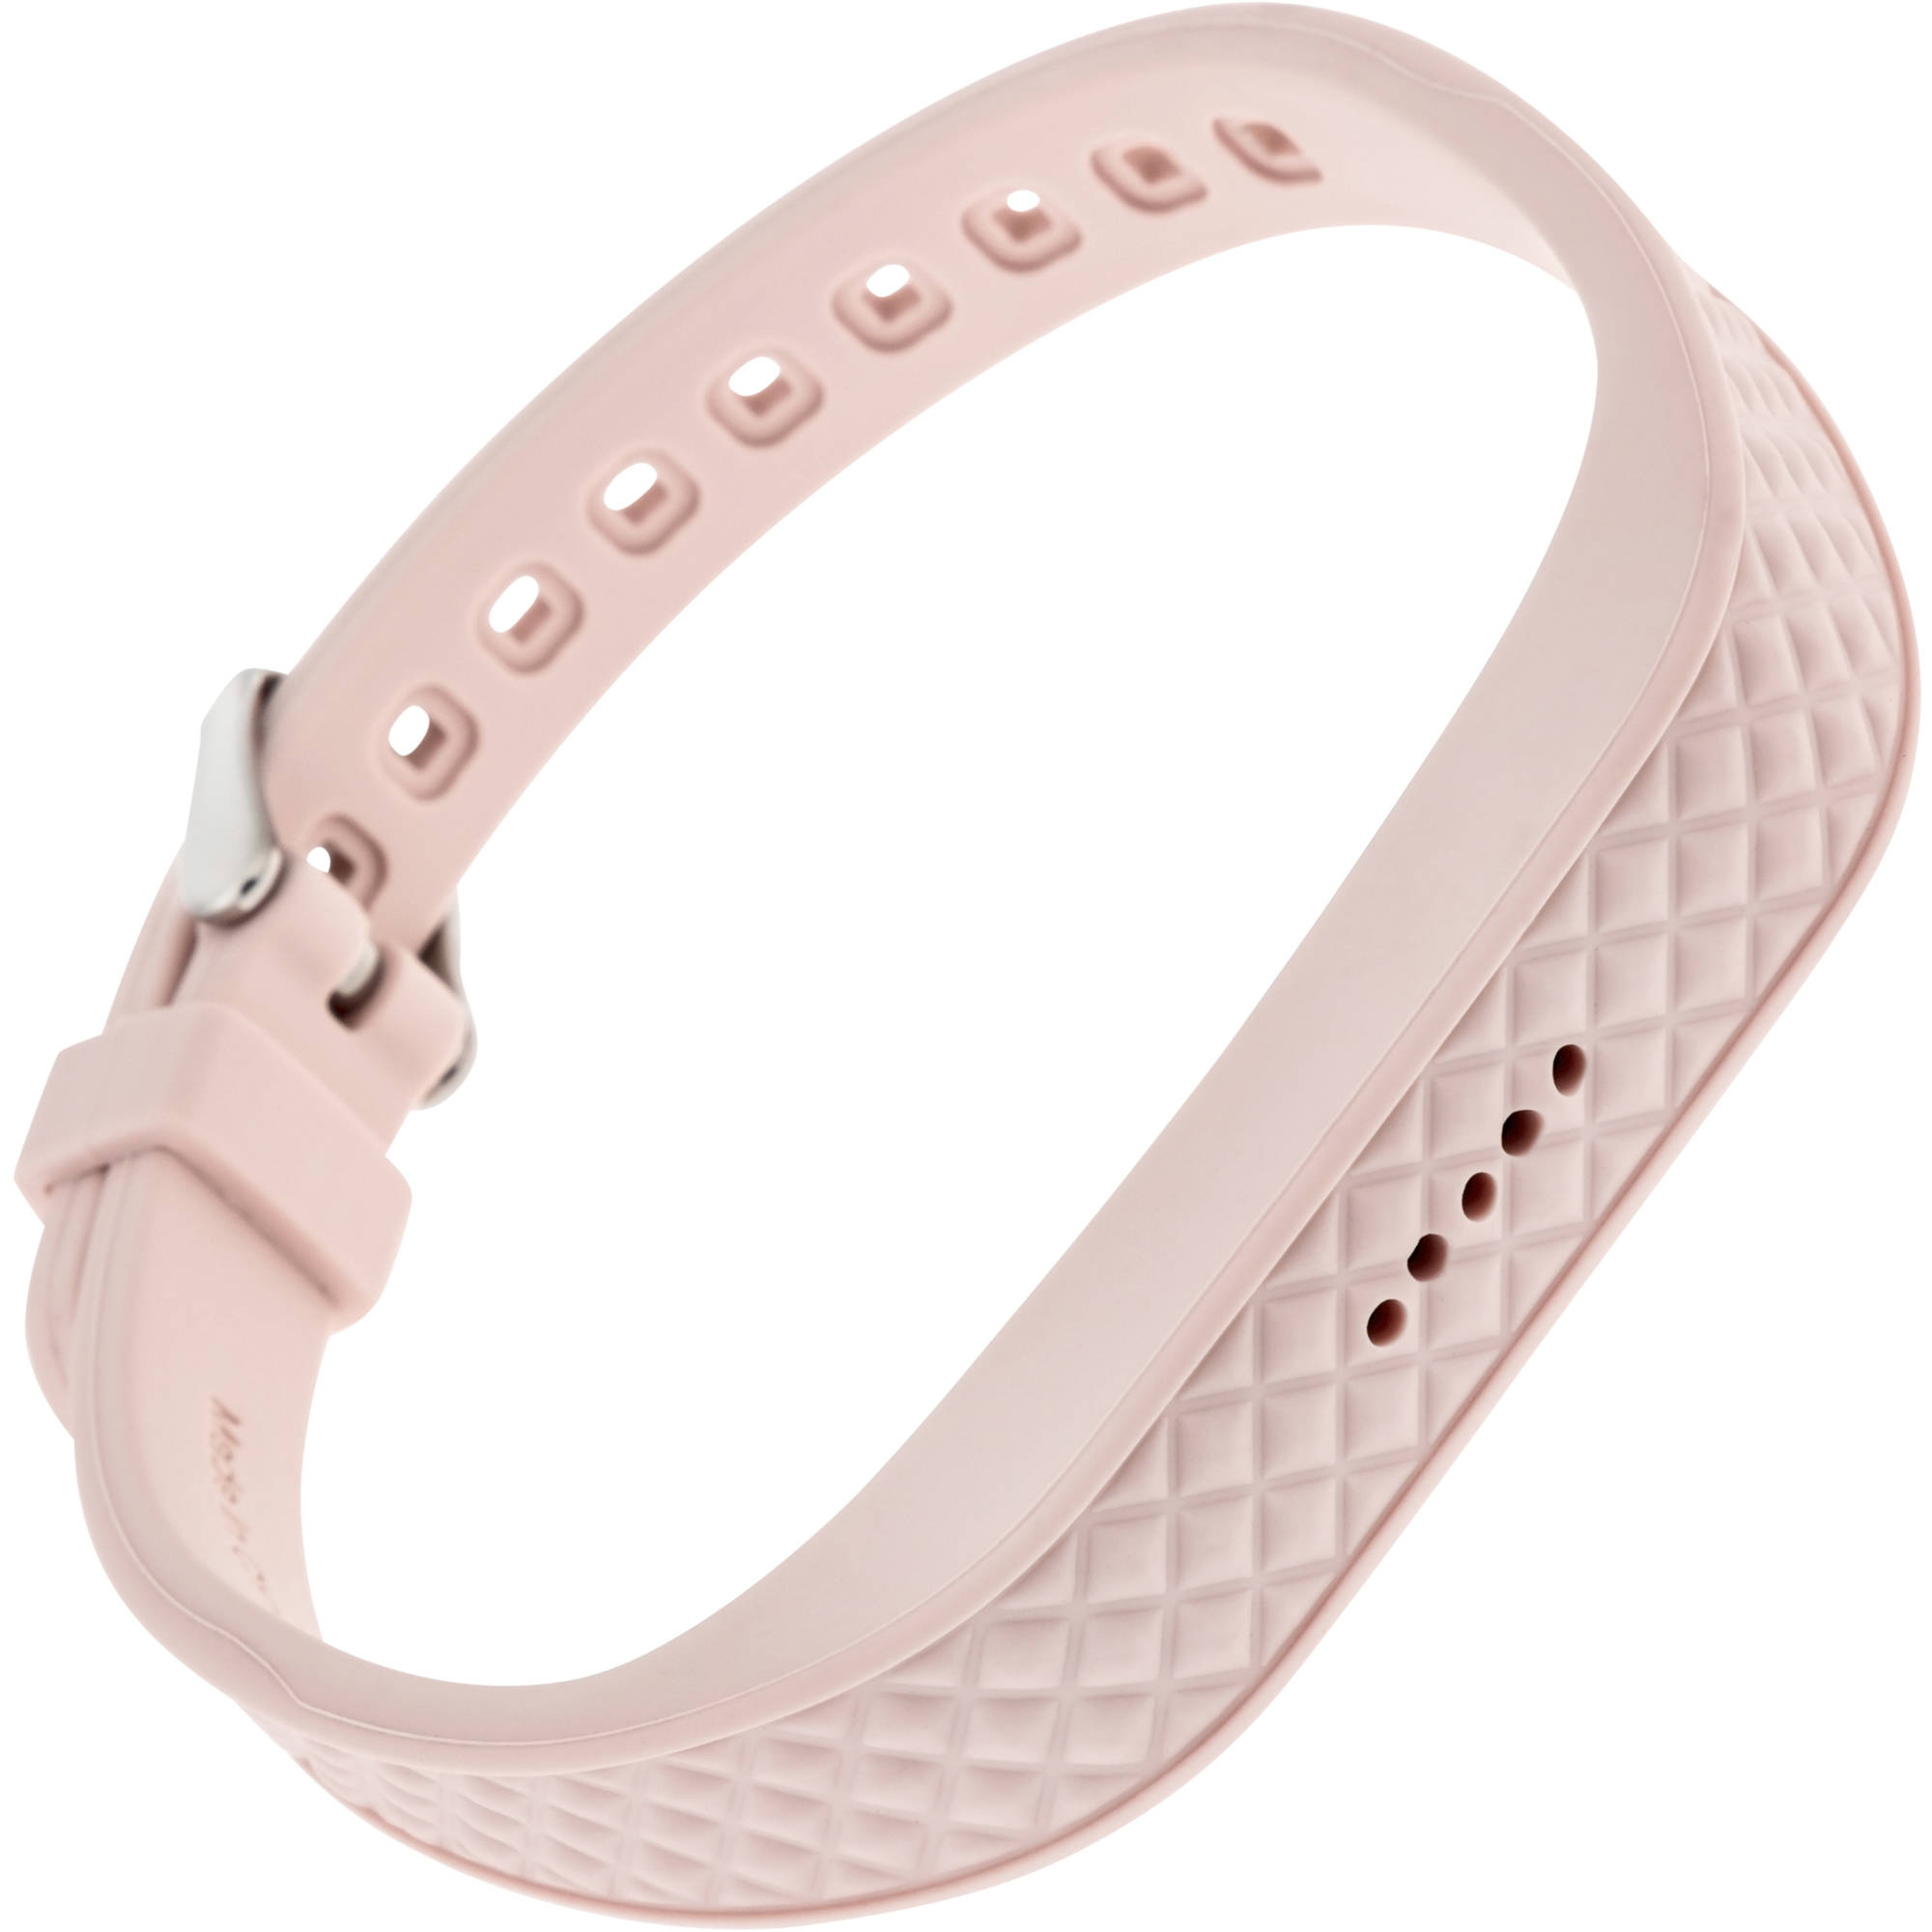 Blackweb Replacement Band with Steel Buckle for Fitbit Flex 2, Pink by